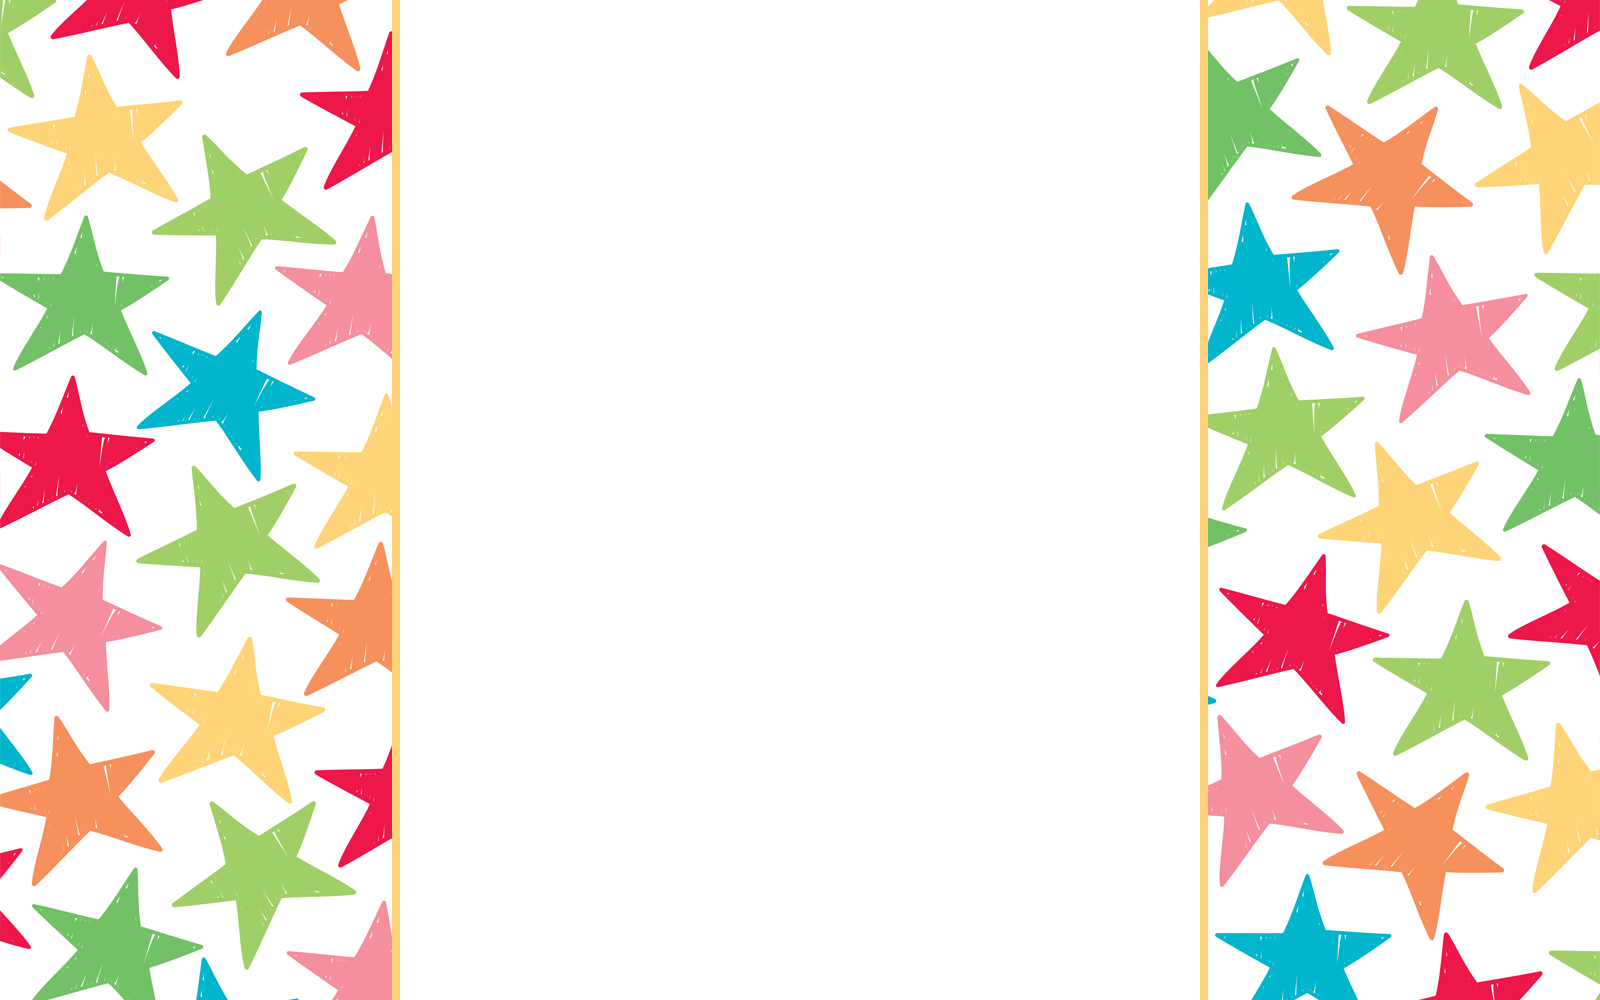 Frame clipart star Christmas Clip on Free Clipart